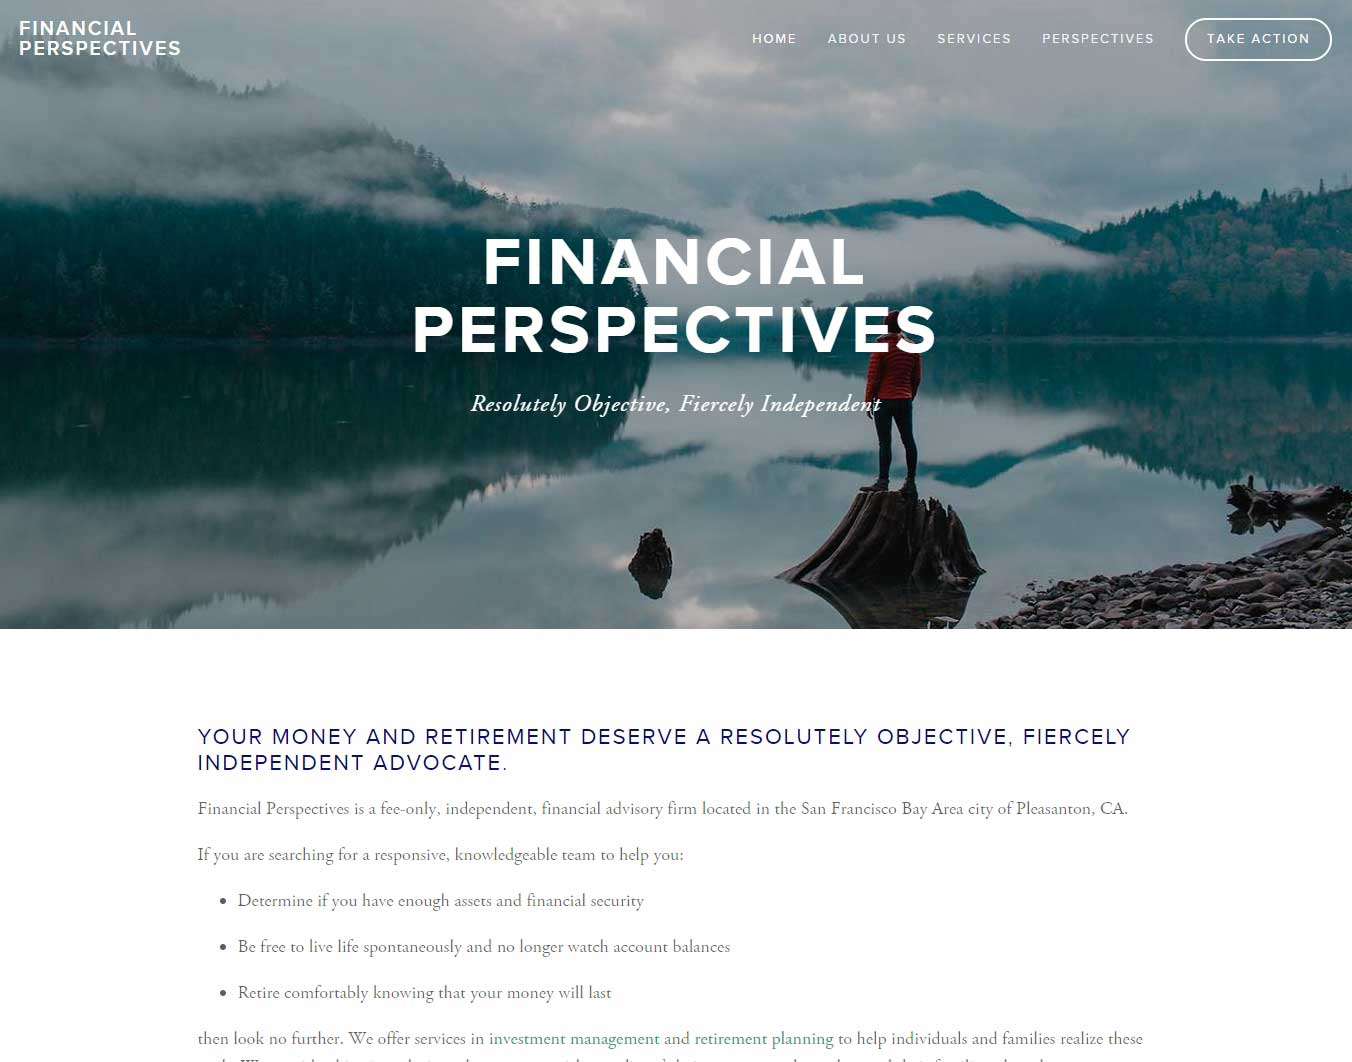 Client Financial Perspectives Website Design in Squarespace Application